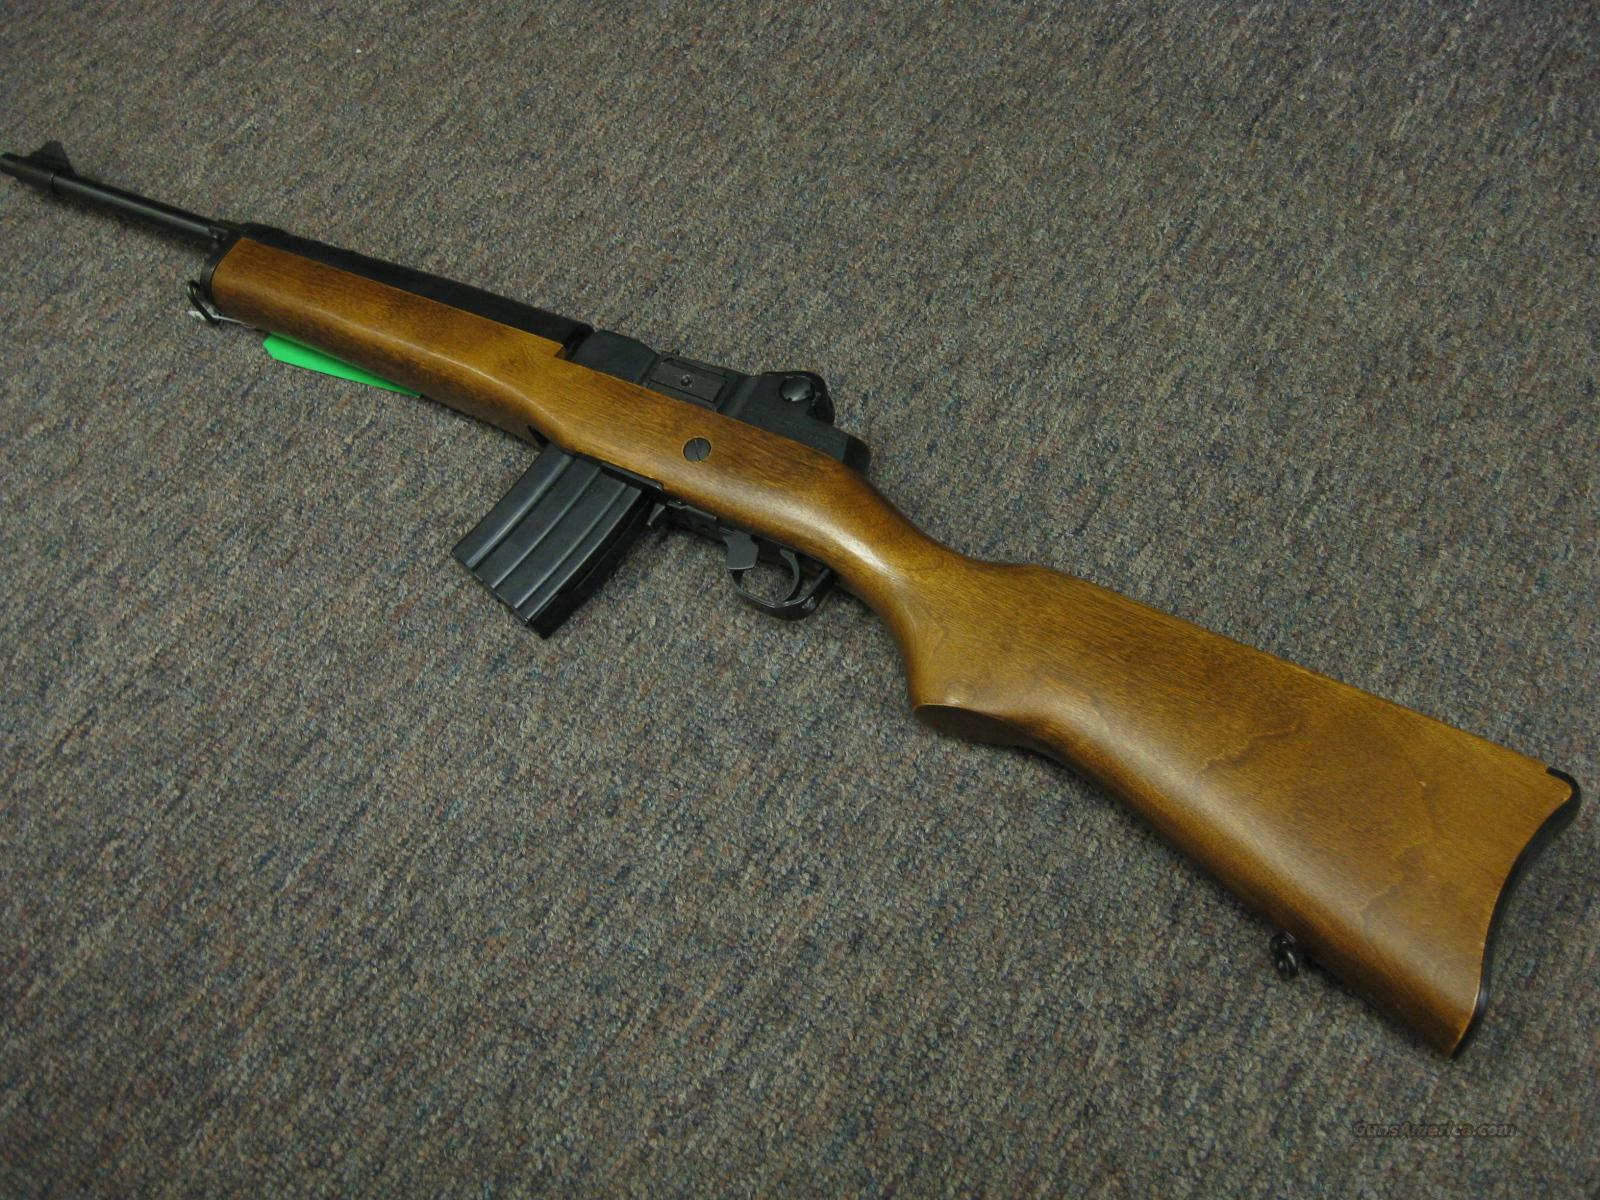 RUGER MINI-14 .223  - EXCELLENT !  Guns > Rifles > Ruger Rifles > Mini-14 Type